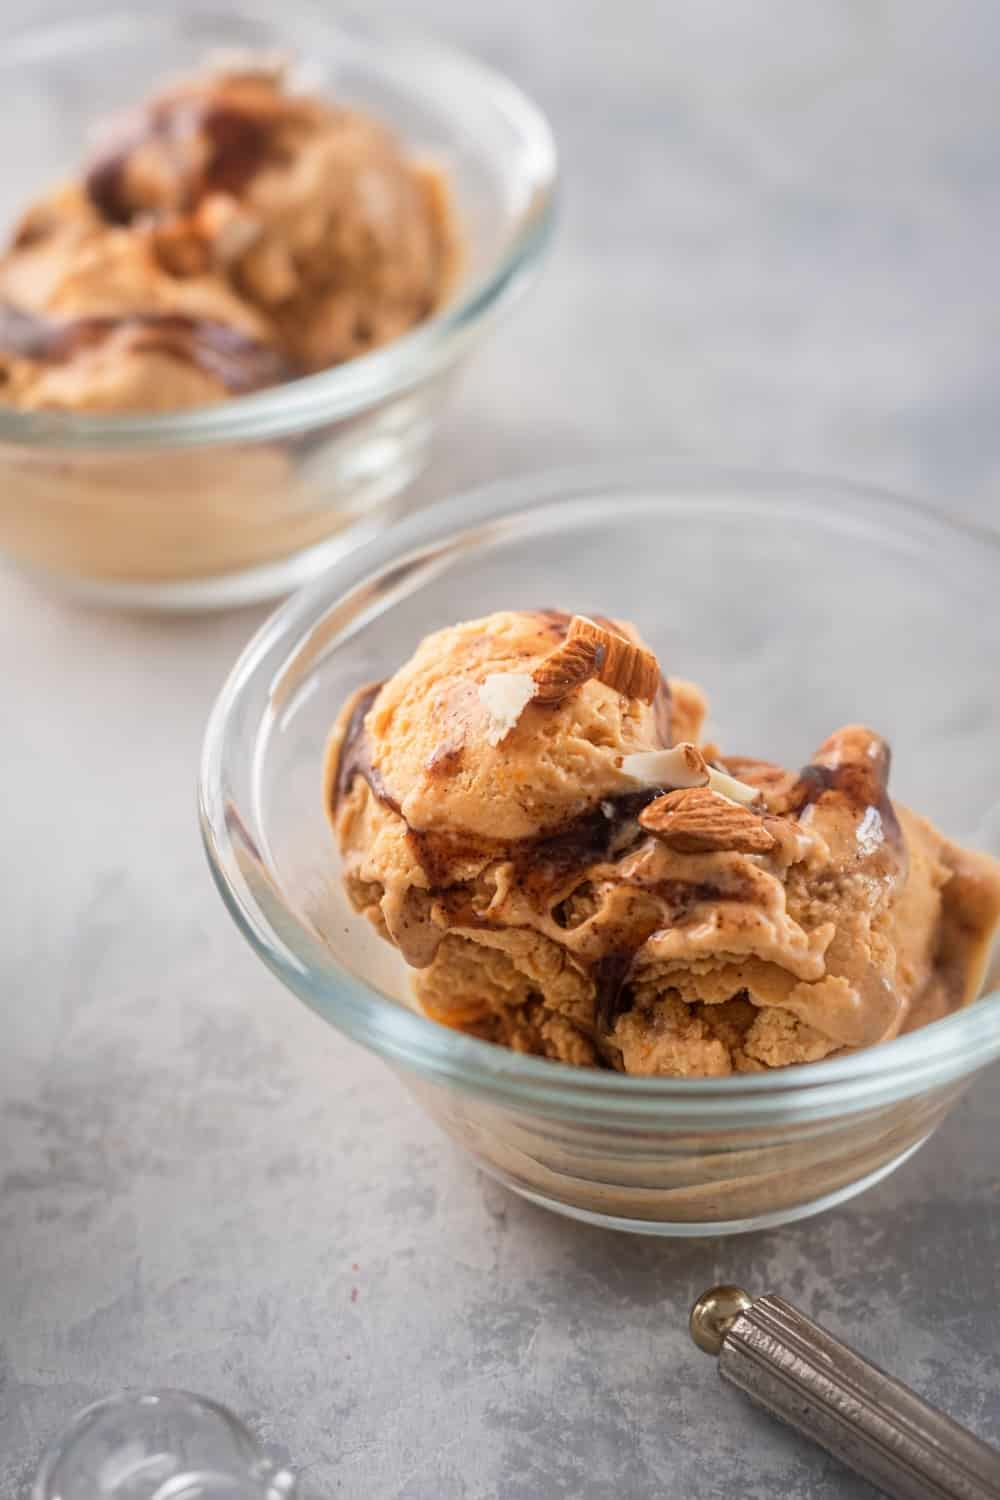 A glass on a grey counter bowl filled with two scoops of pumpkin ice cream. Behind it is part of another glass bowl filled with pumpkin ice cream.